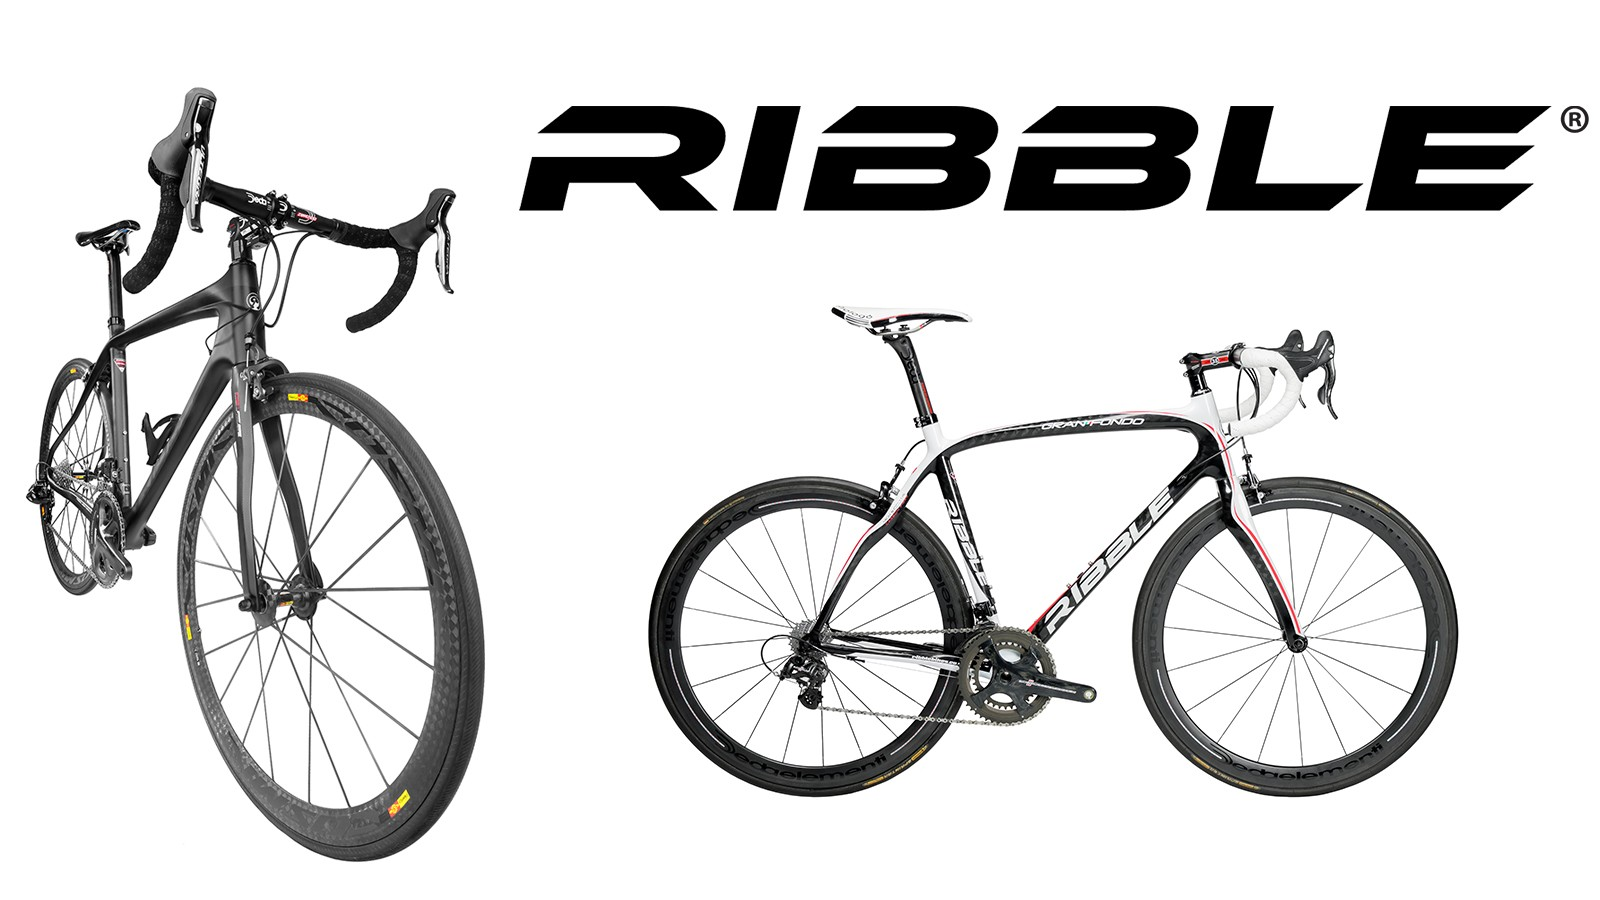 Ribble Cycles is bringing their range of bikes to Australia